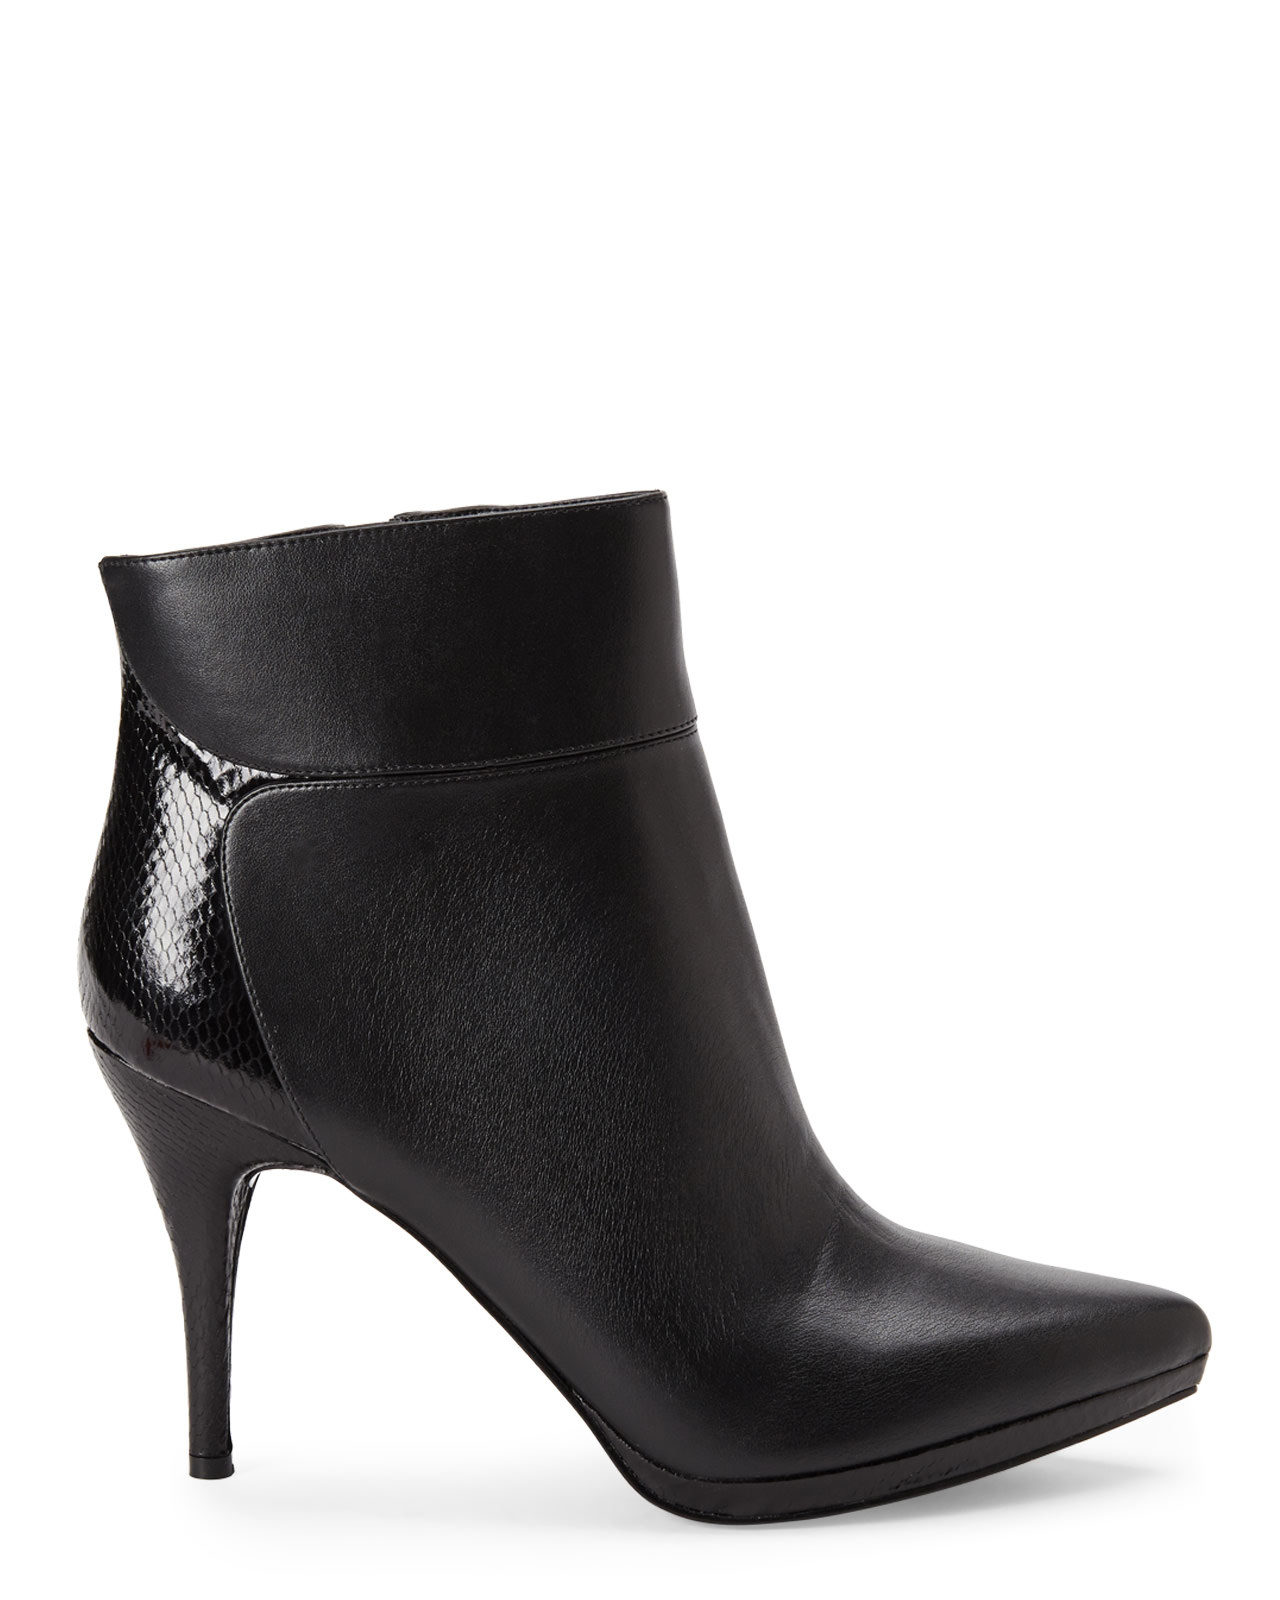 Nine West Booties. A good pair of boots will last for years and years and the best boots just seem to get better as they age and break in. Though there are important details to consider when looking for a pair of comfortable and long lasting boots, one of the most important details is the actual style of the boot itself.